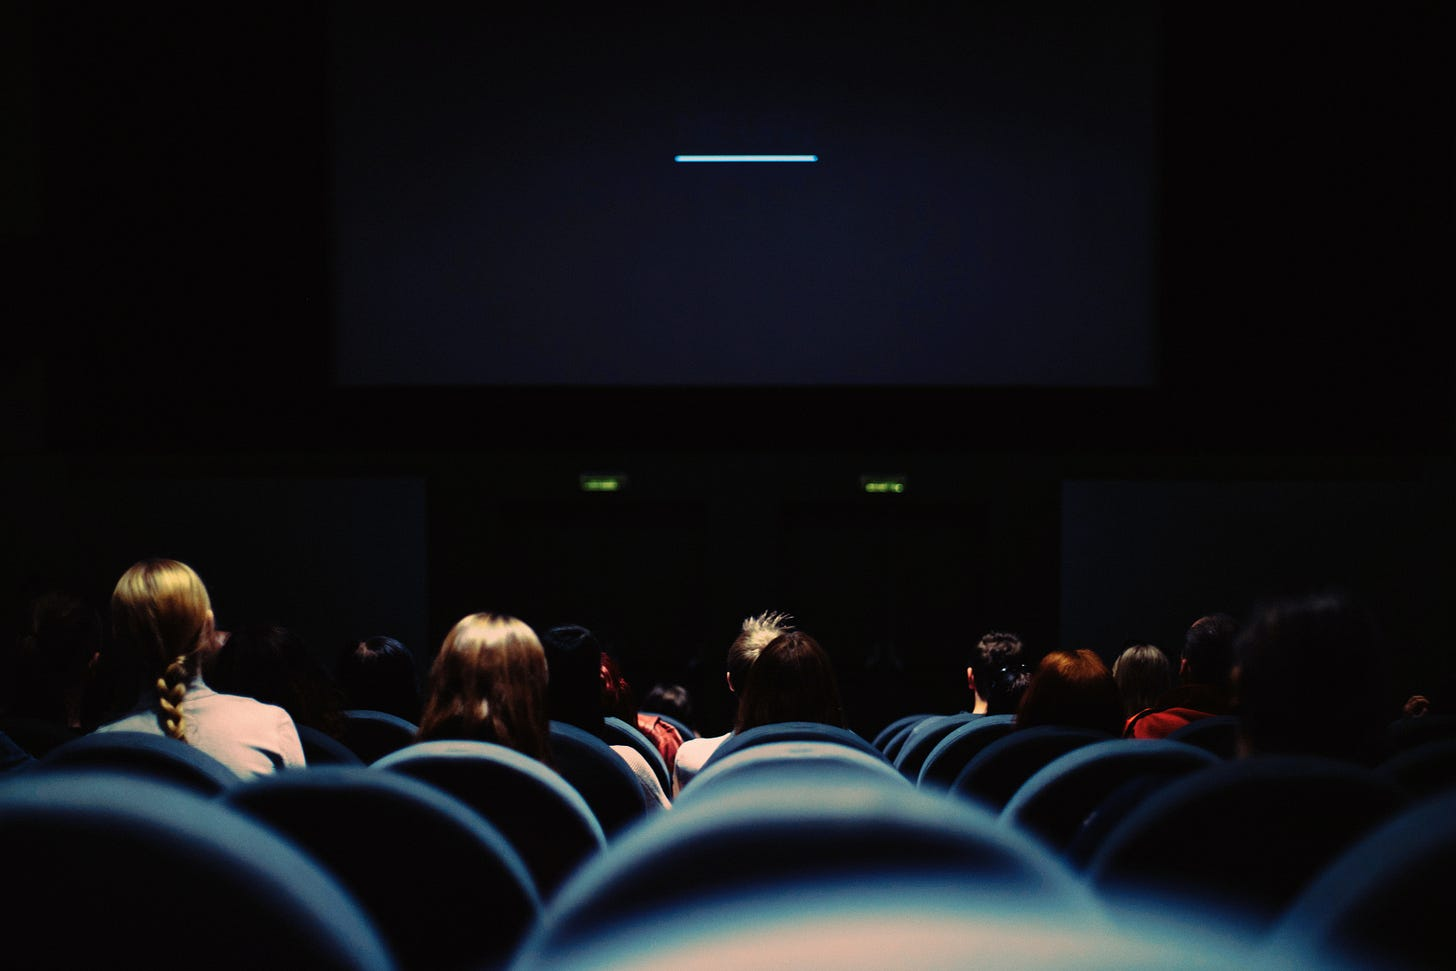 Behind a crowd of people. seated in a dark movie theater.